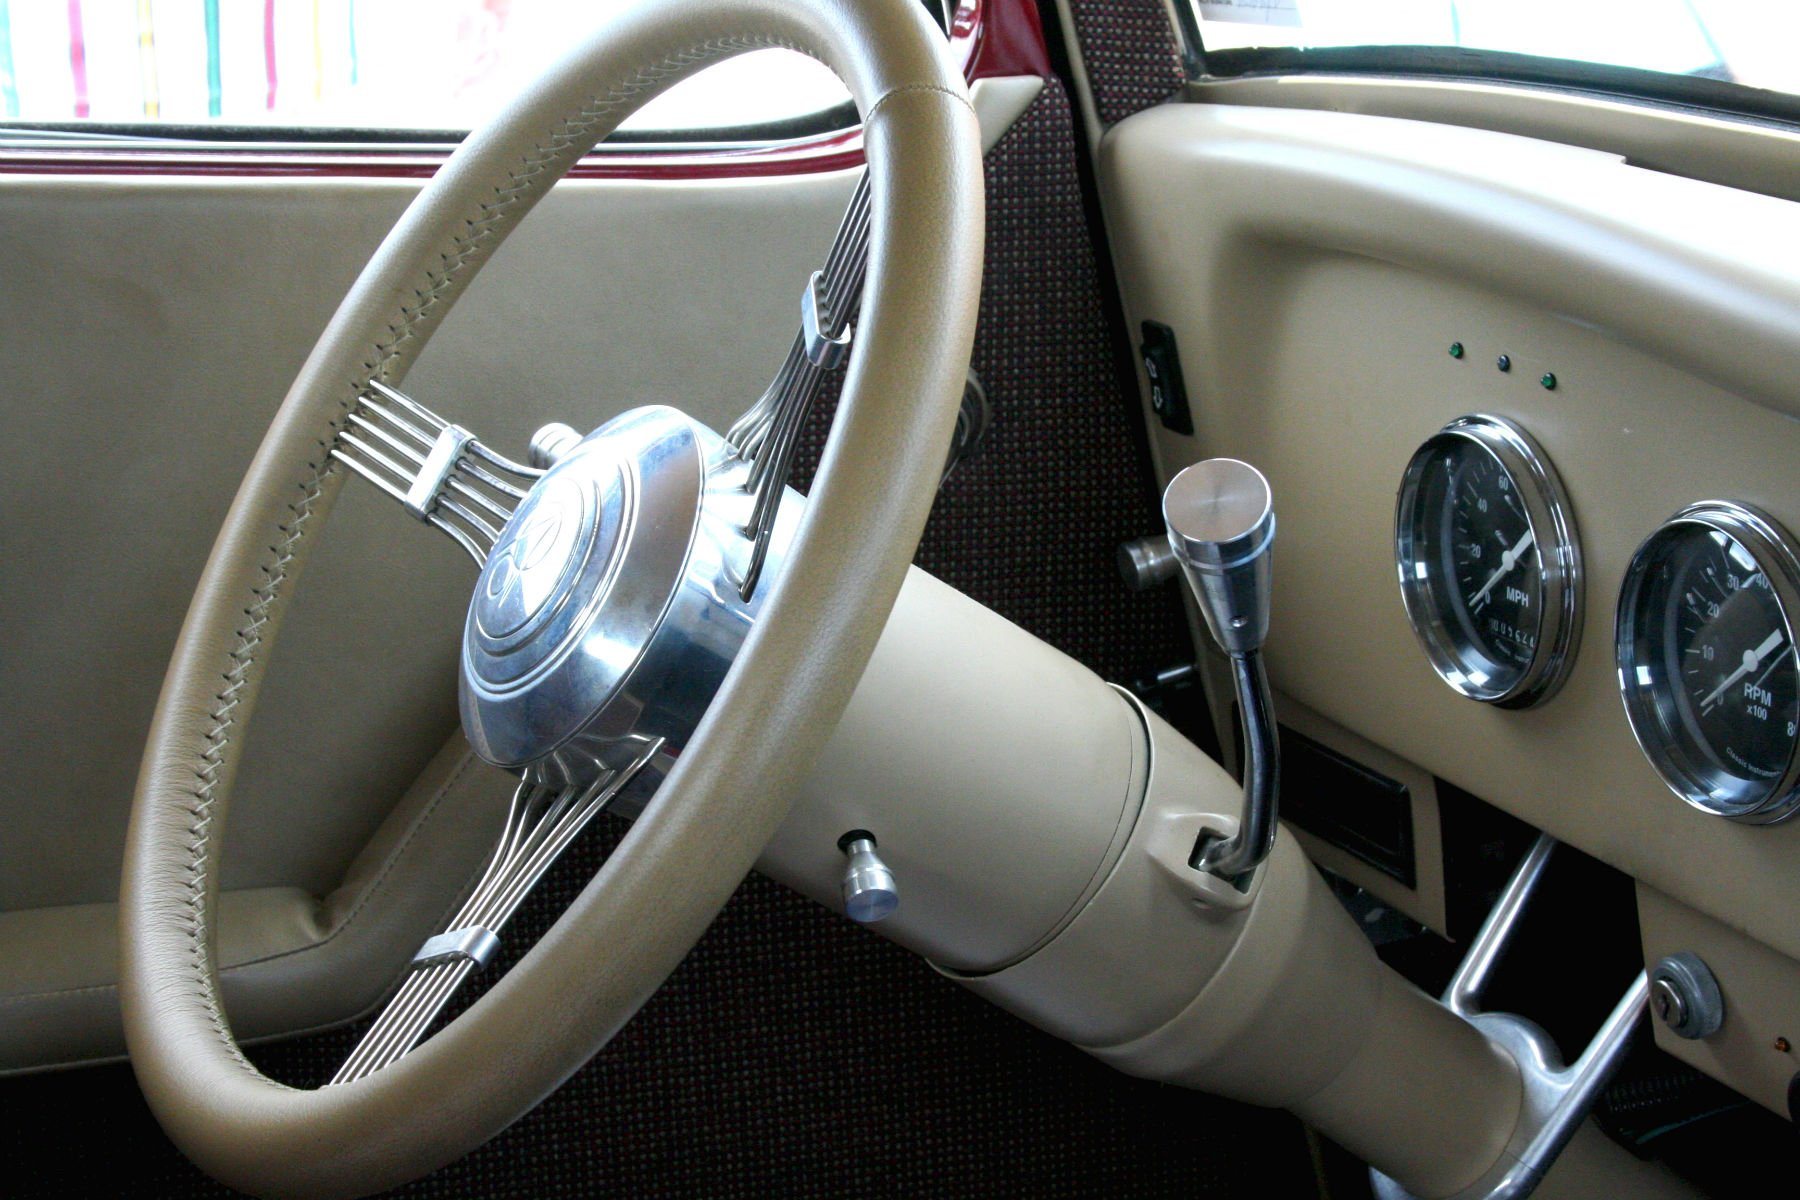 Mounting the gear shift on the column evokes the charms of former times; it also promotes free space for fore-and-aft movement of a full-width bench seat.